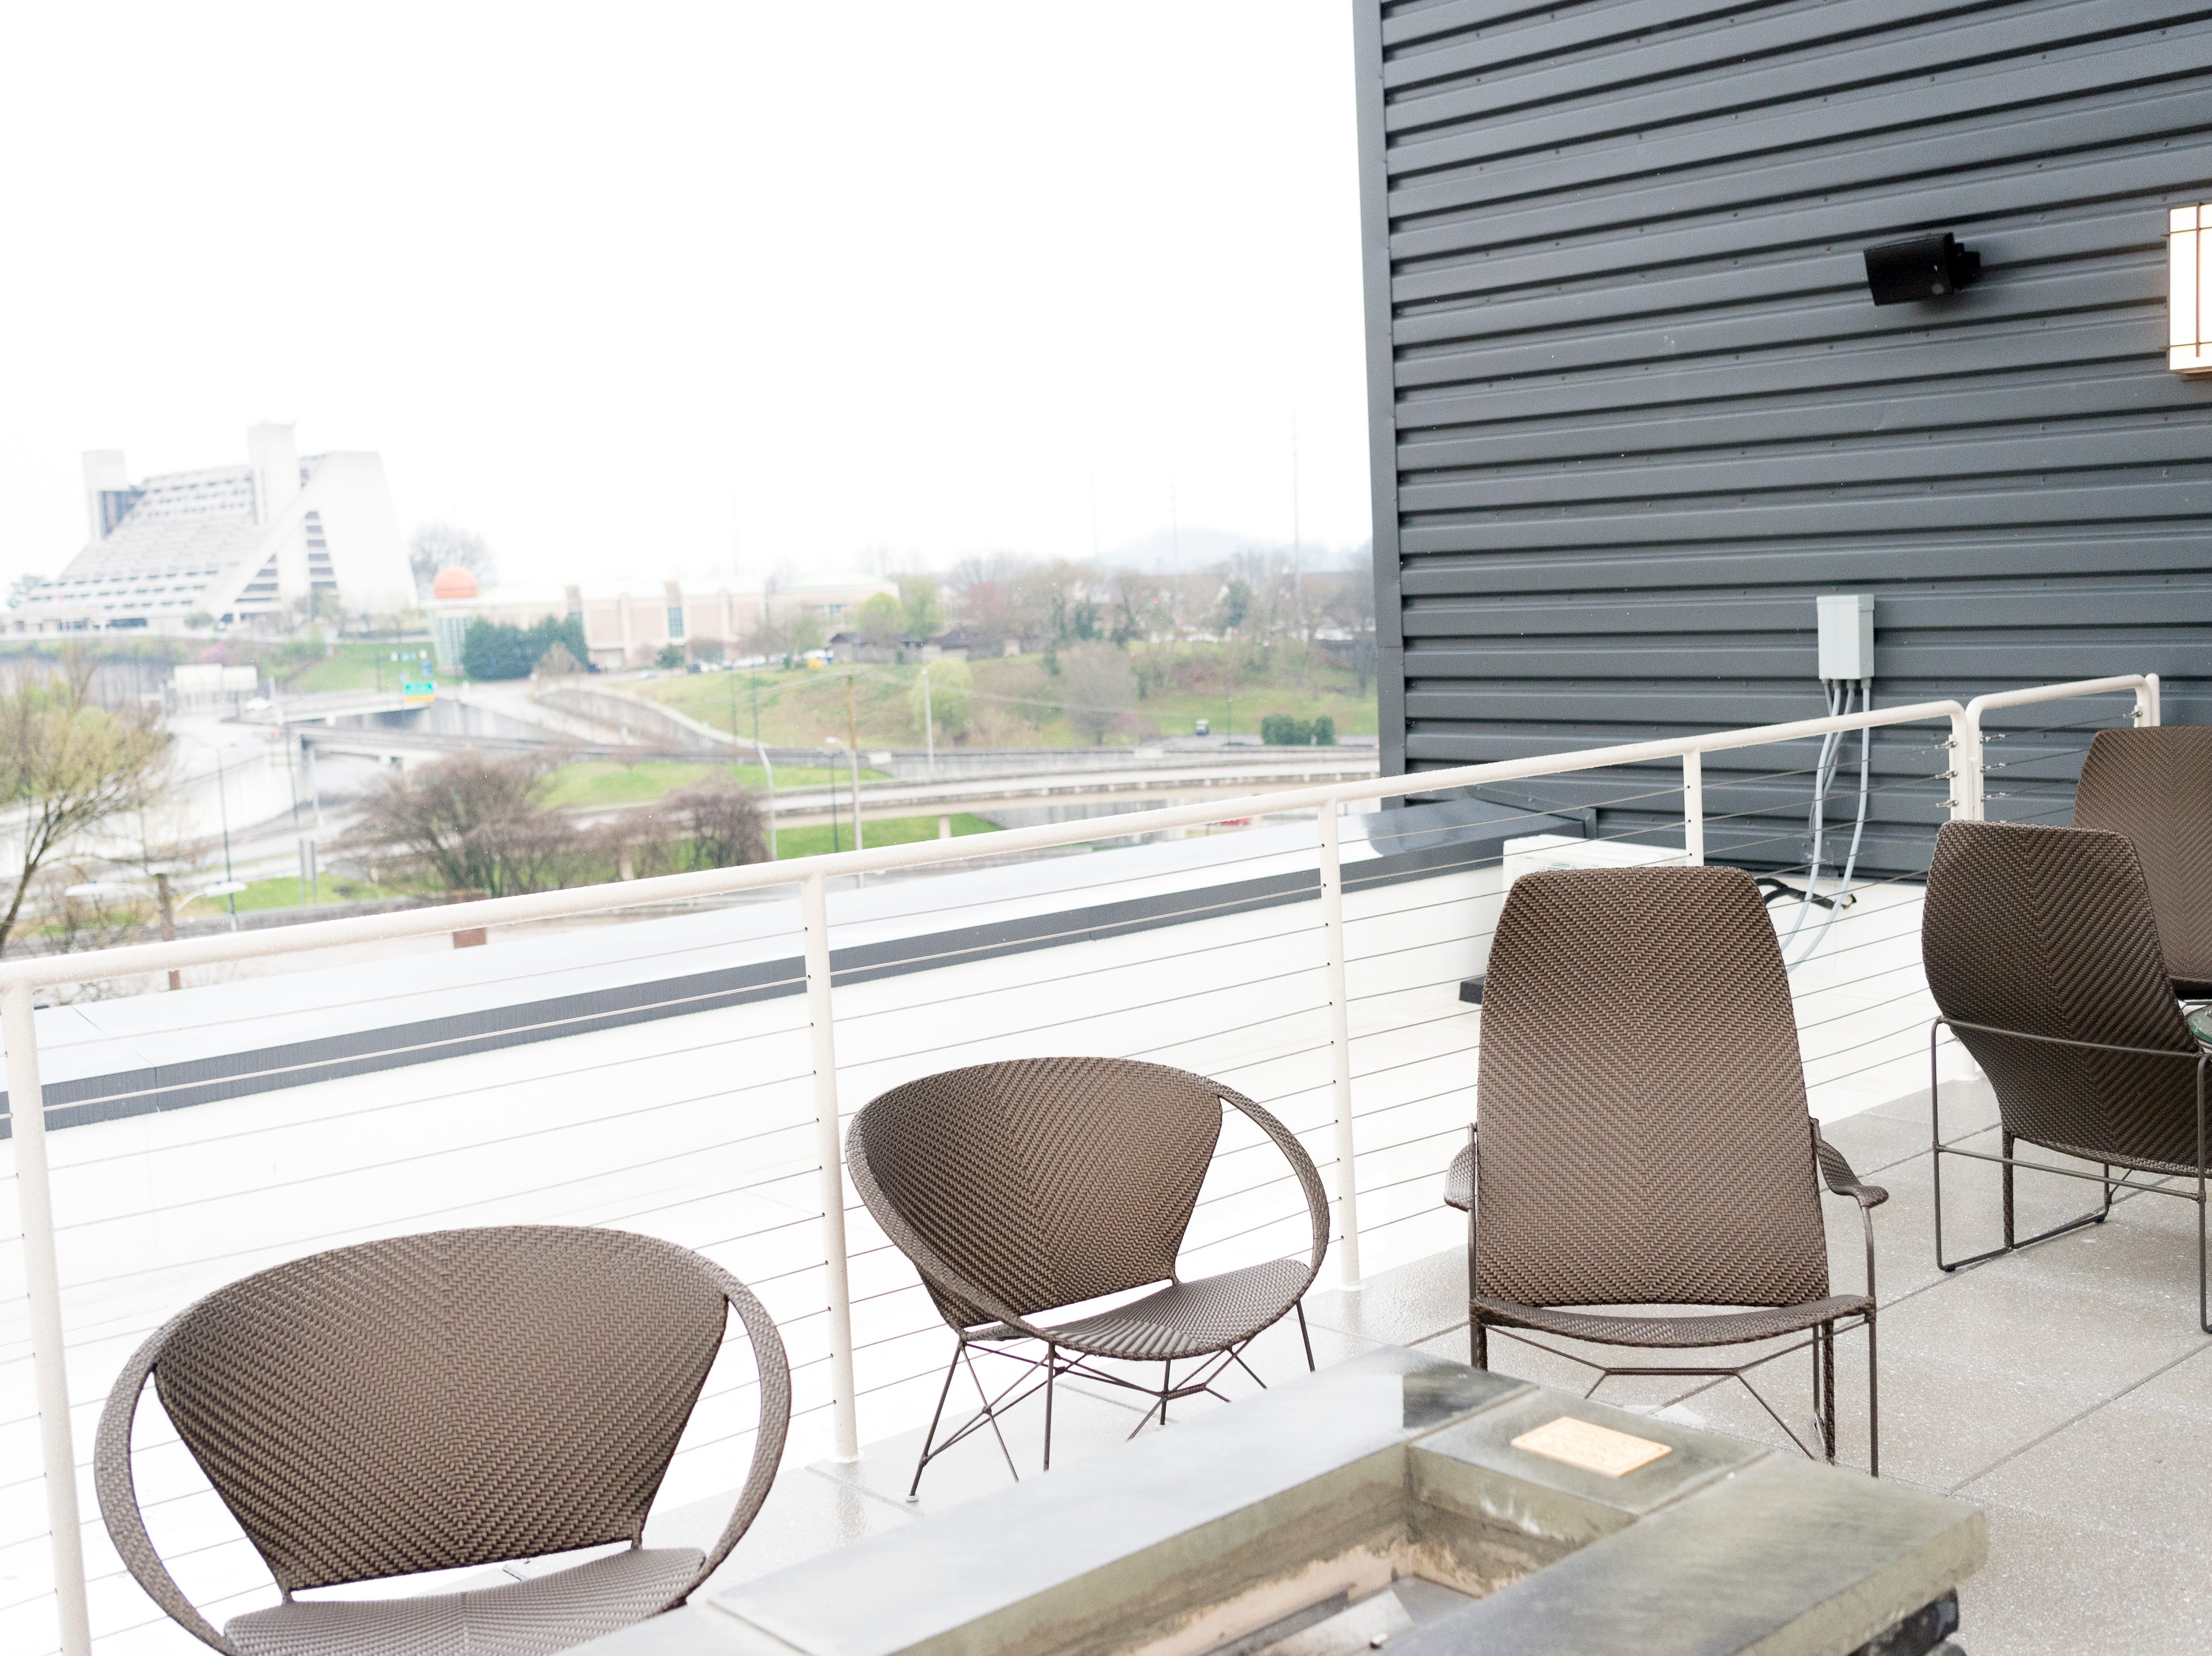 The Above Church second floor terrace at the new Courtyard and Residence Inn by Marriott at 210 Church Ave. in Knoxville, Tennessee on Monday, March 25, 2019. The hotel is the first of its kind in Knoxville to offer two different tiers of hospitality within the same building.